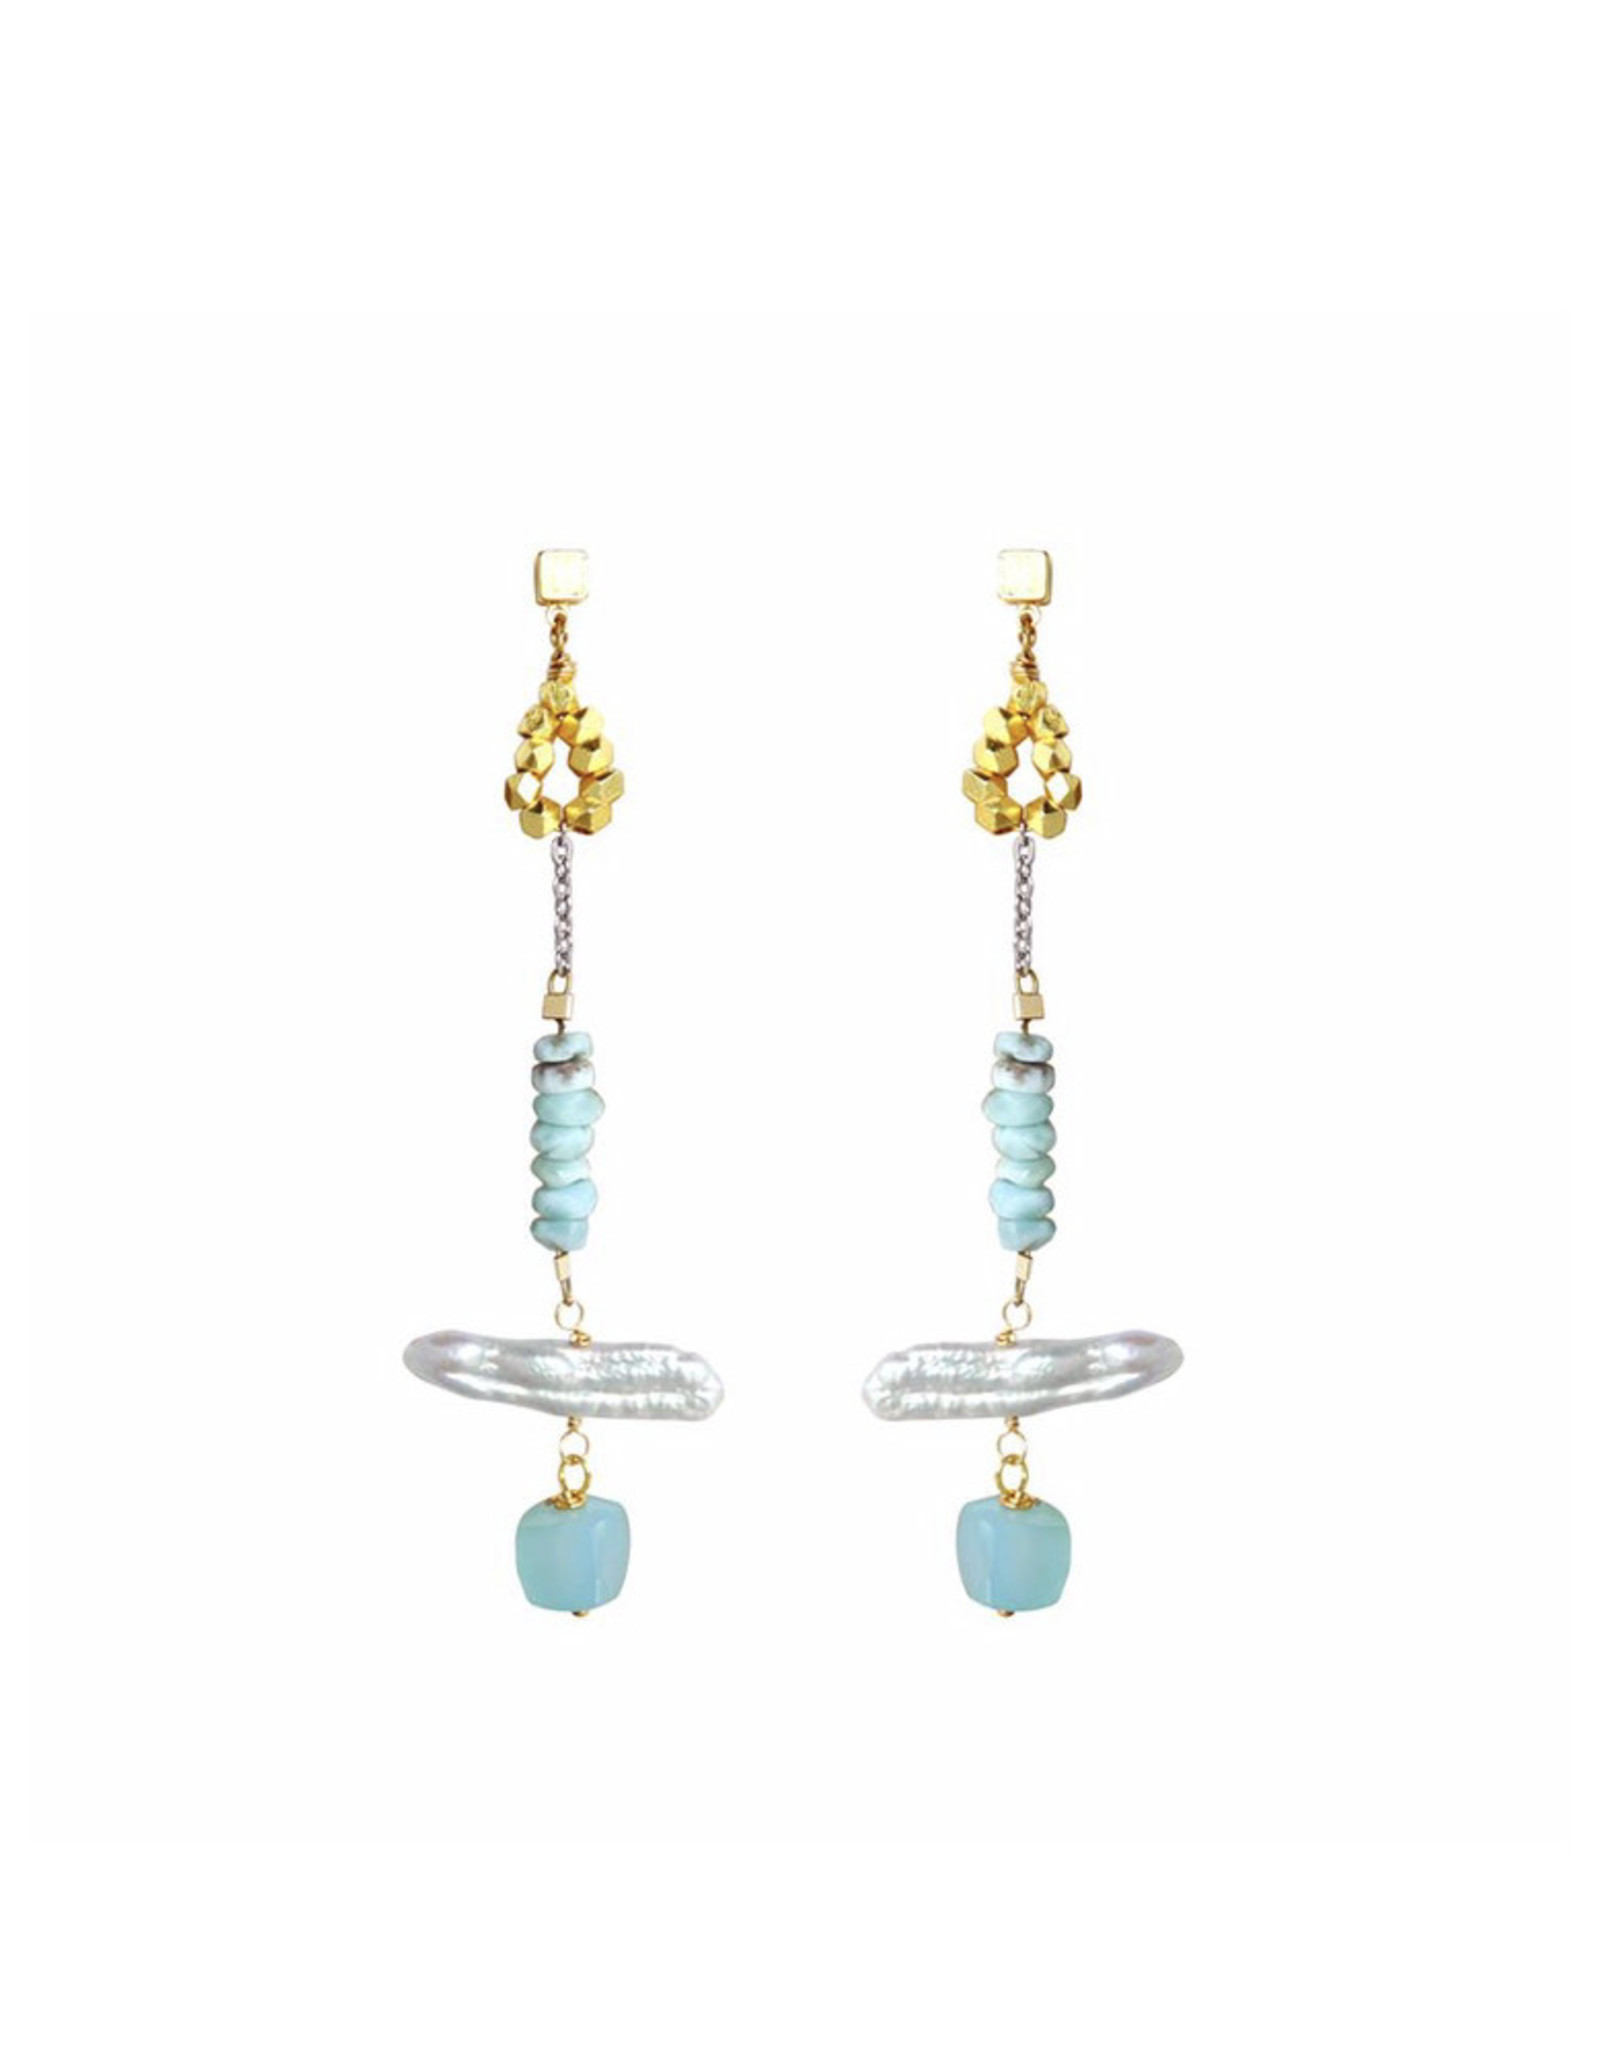 Catherine Page Jewelry Slide Earrings